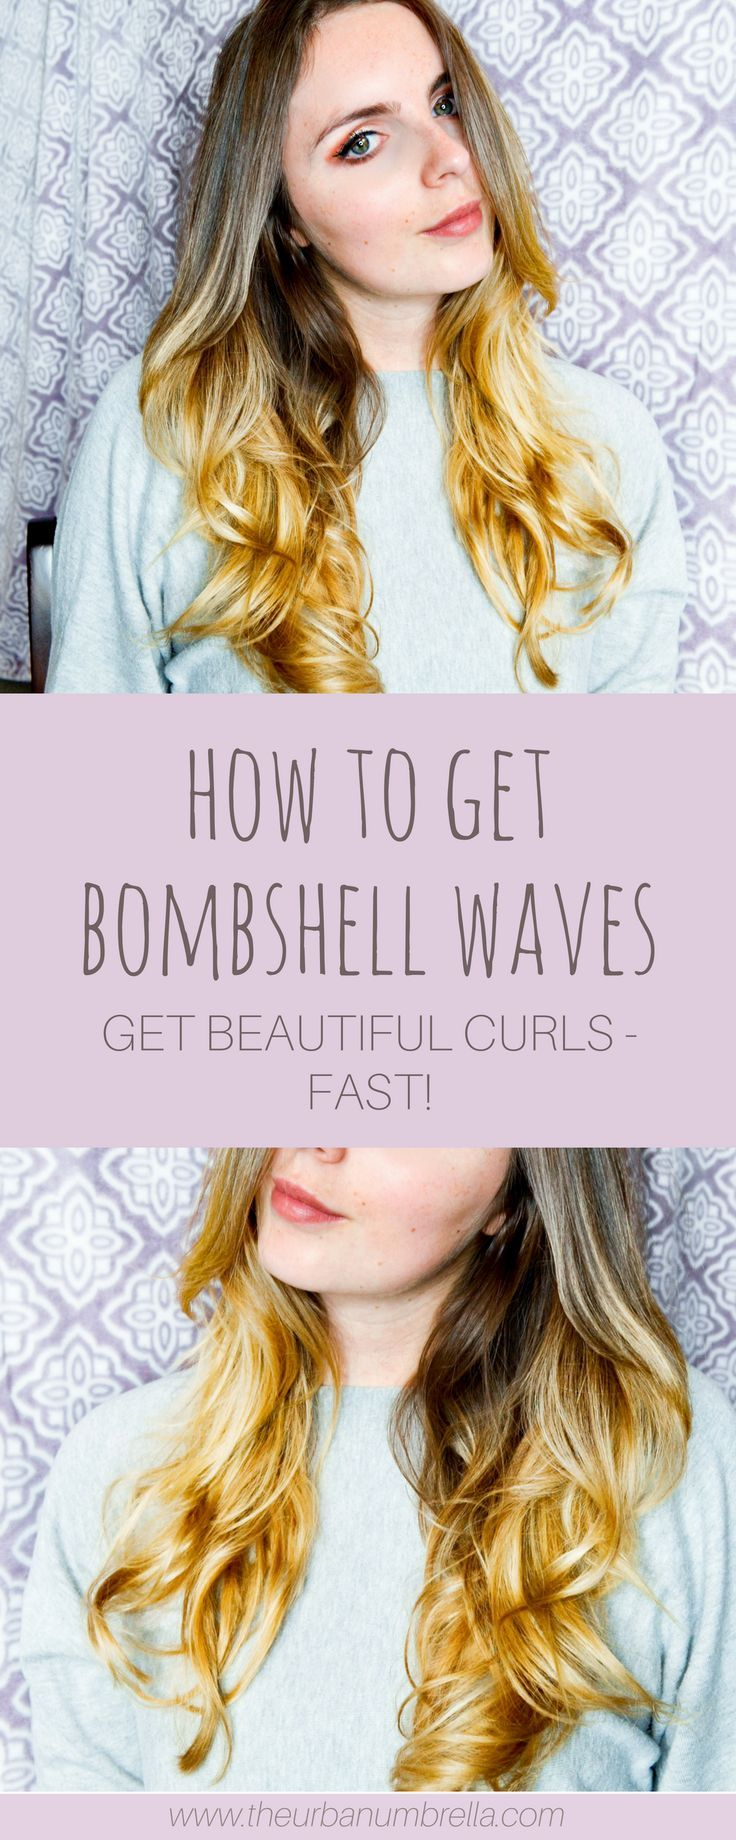 How to Get Bombshell Waves (Fast and Easy!)